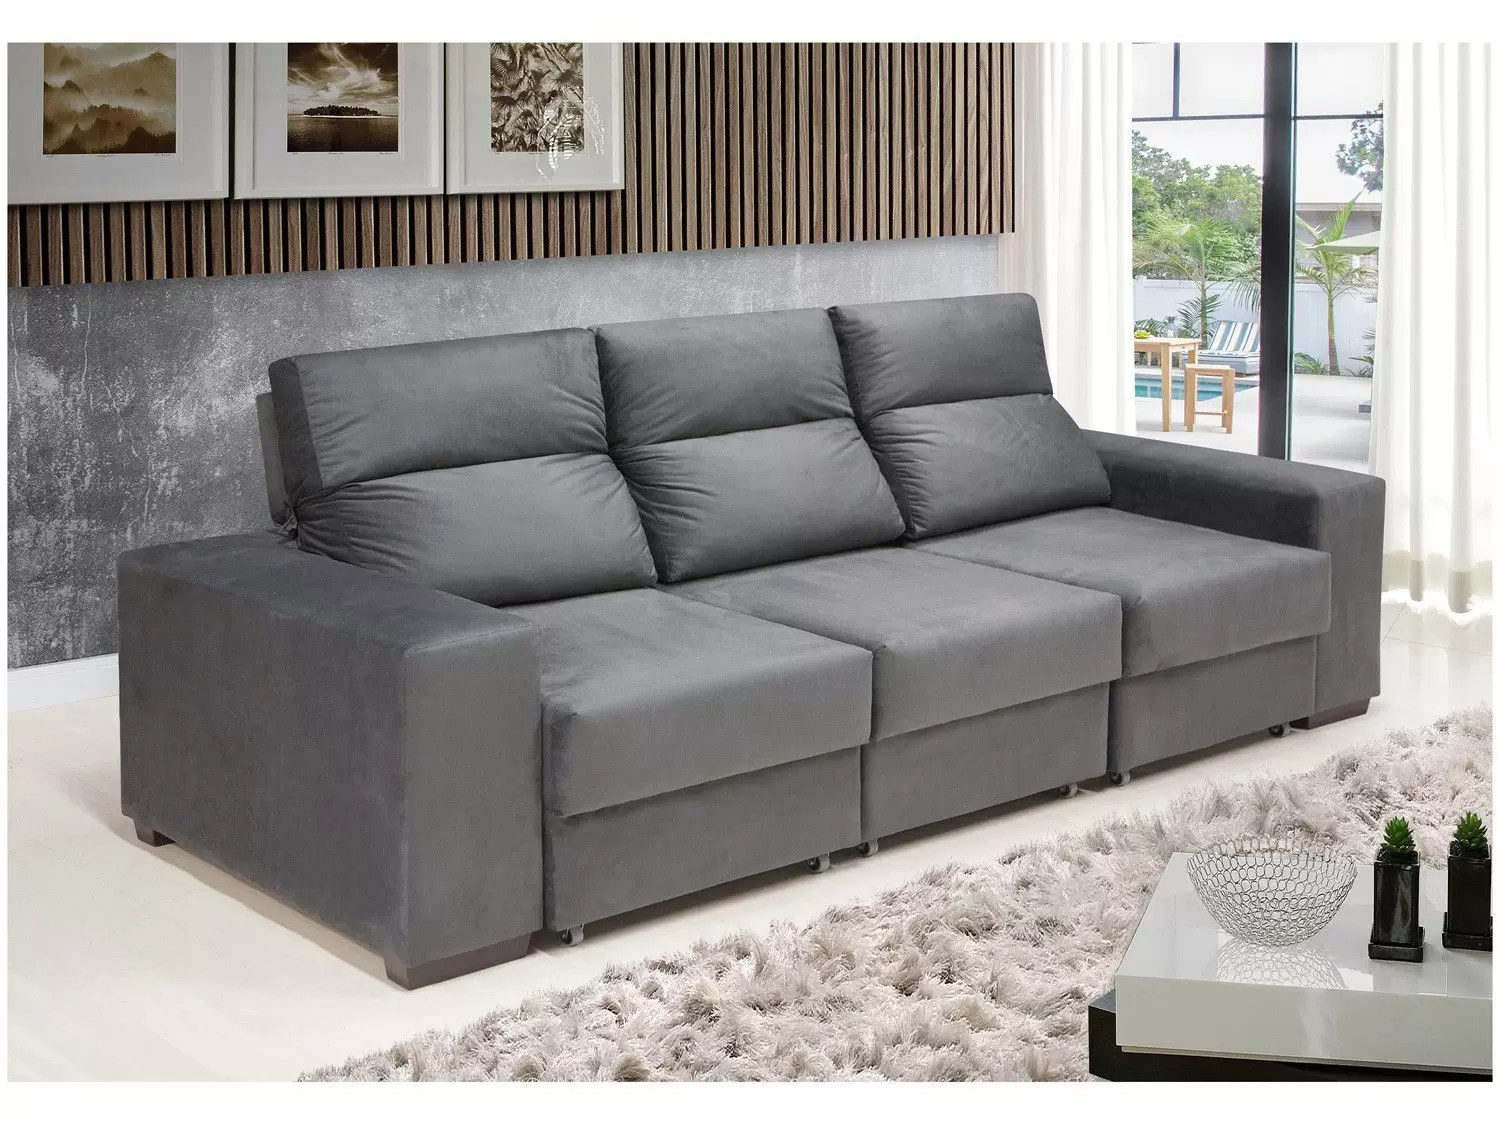 Sofa Retratil Uba Mg Sofá Retrátil Reclinável 3 Lugares Chapecó Catarina